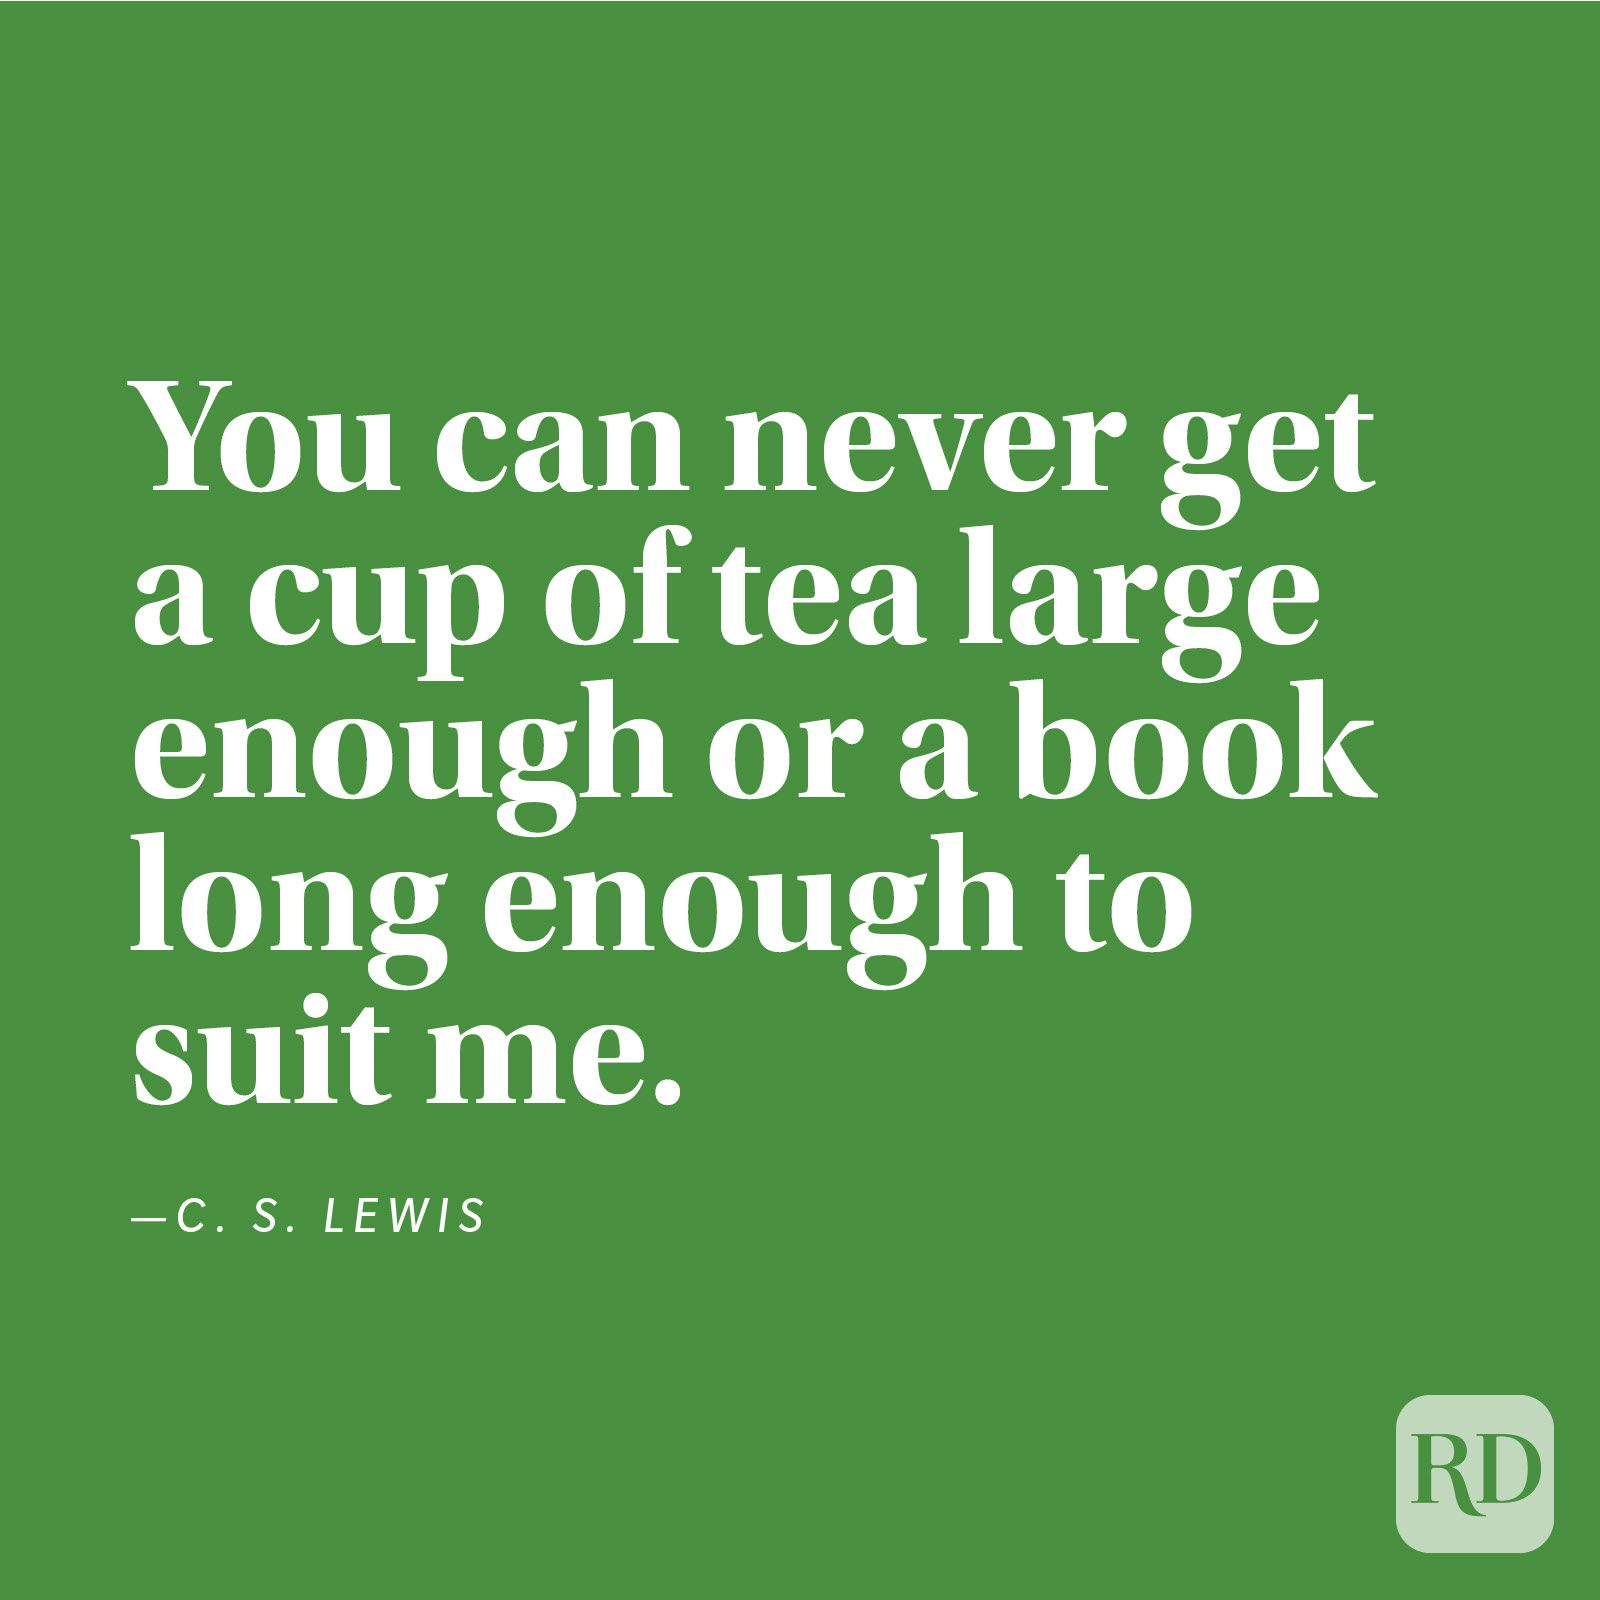 """You can never get a cup of tea large enough or a book long enough to suit me."" —C. S. Lewis."